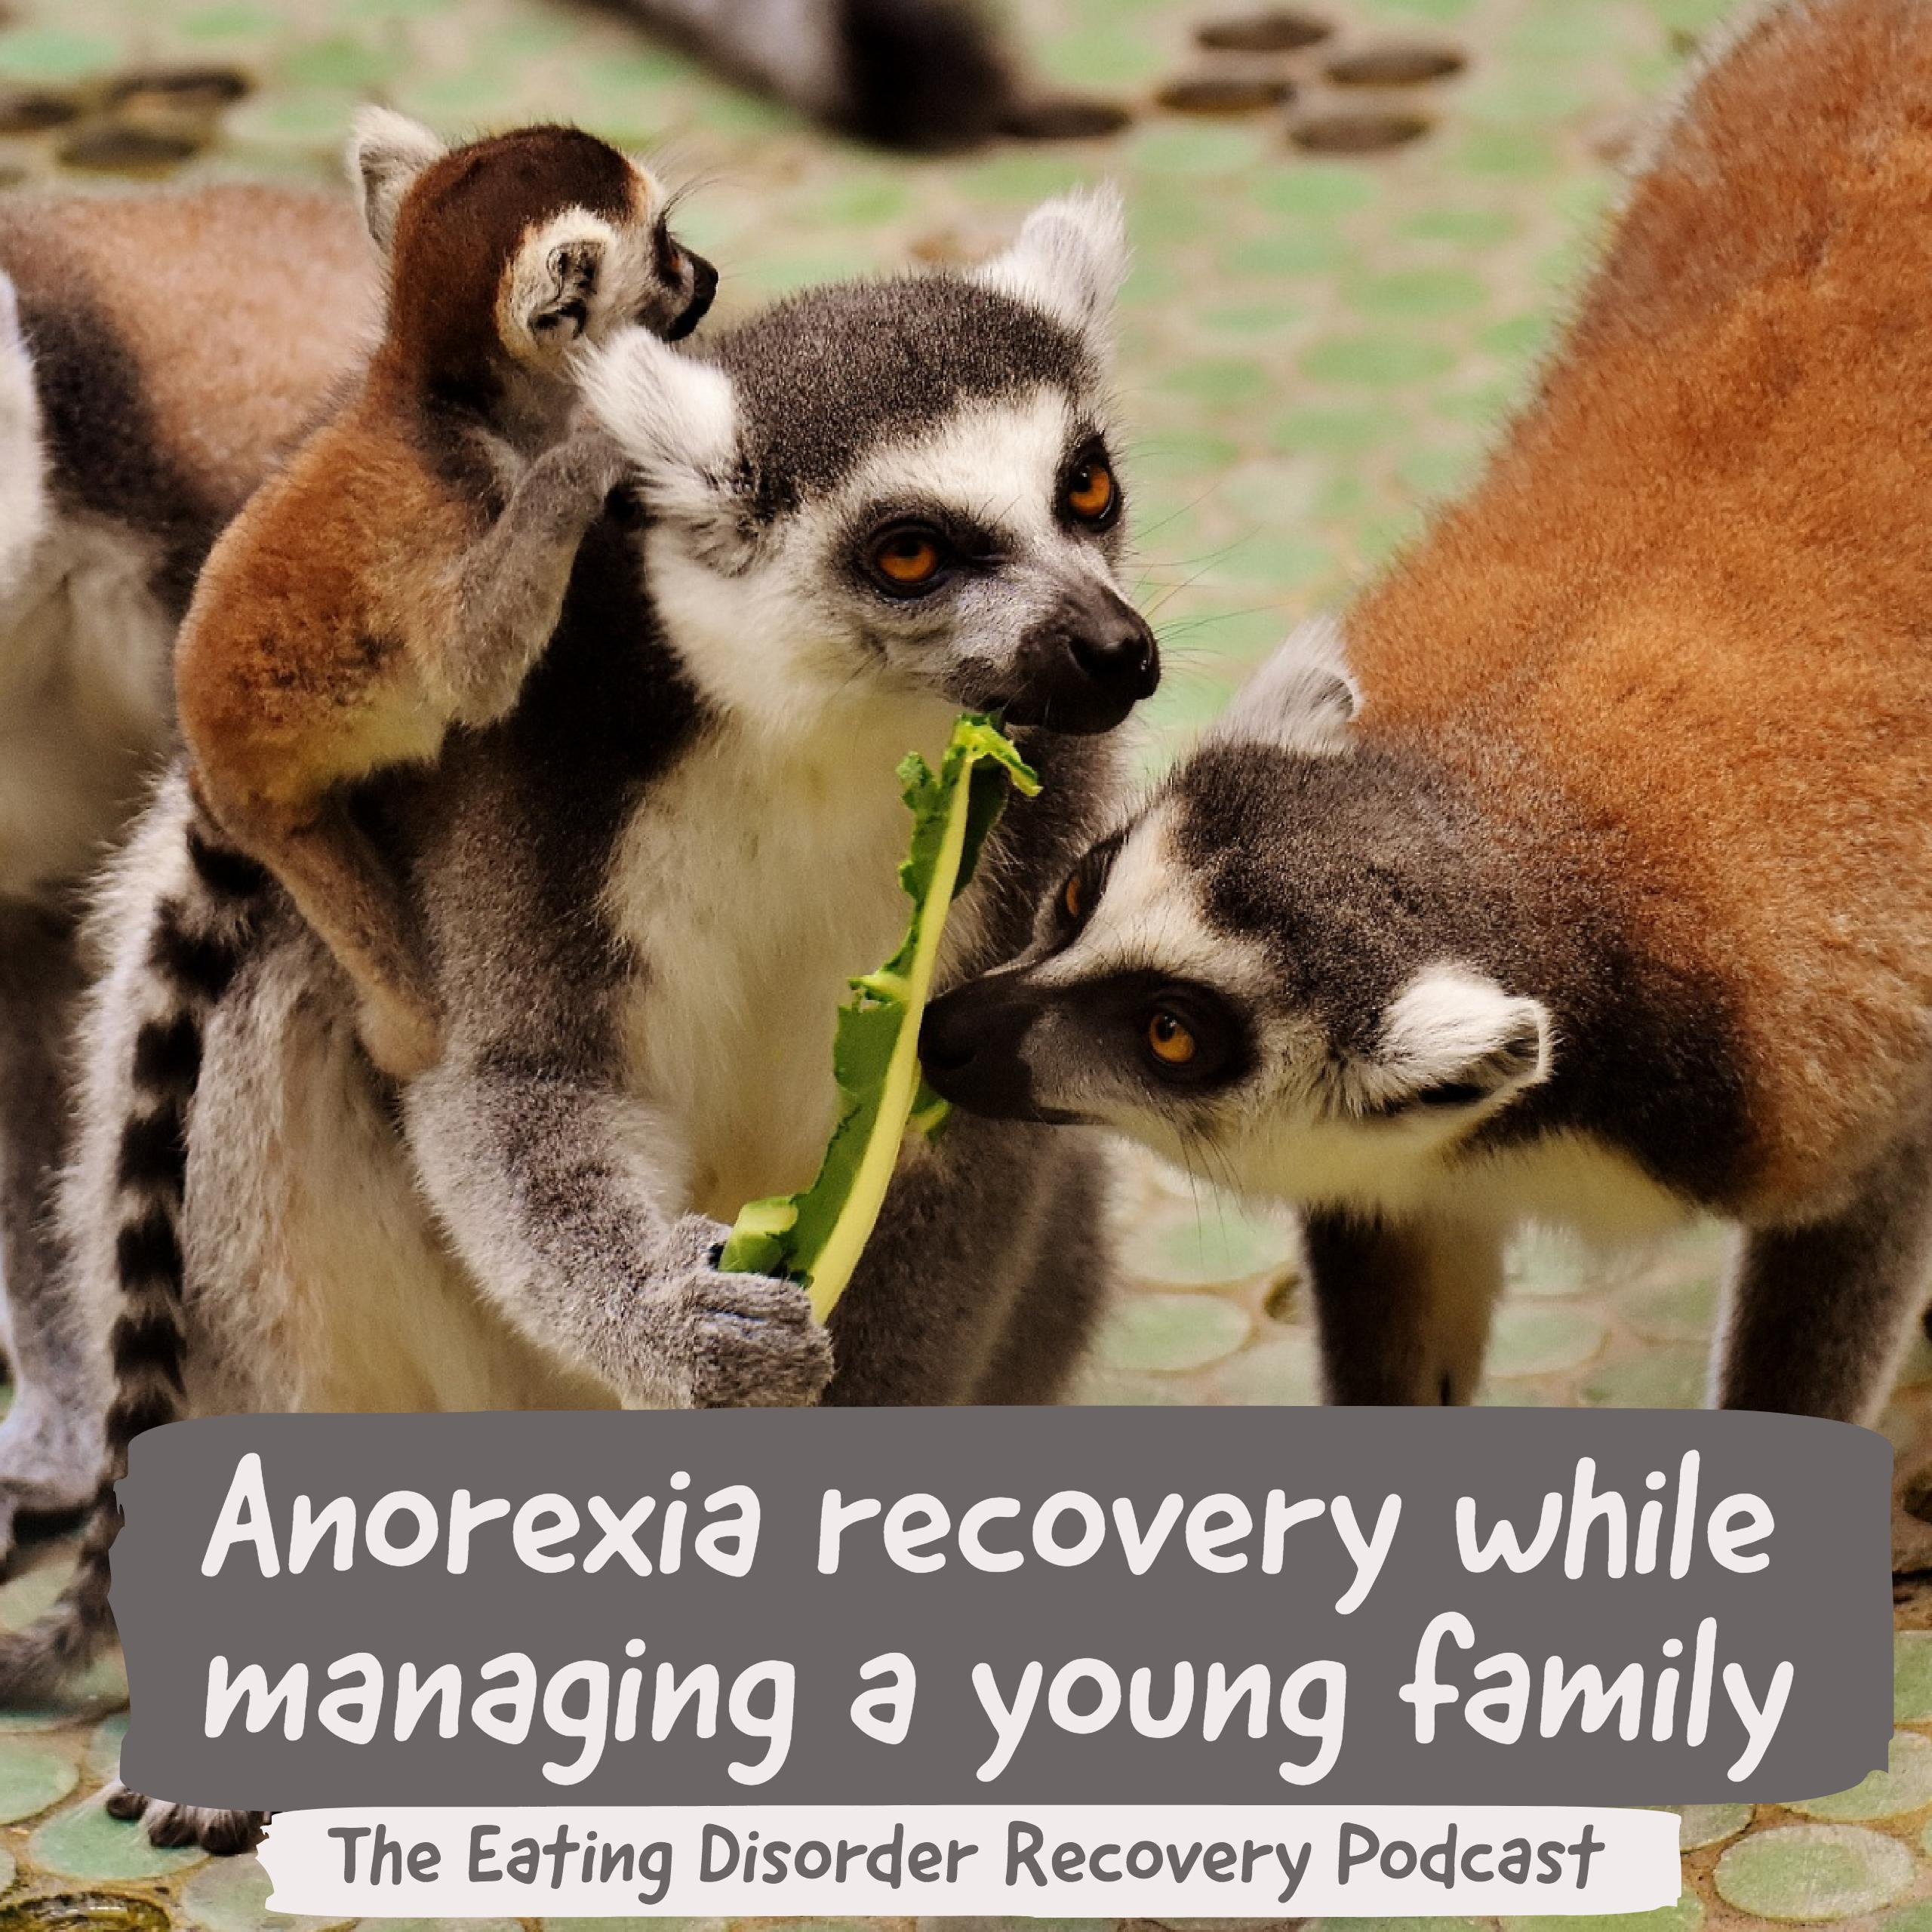 Anorexia recovery while managing a young family.